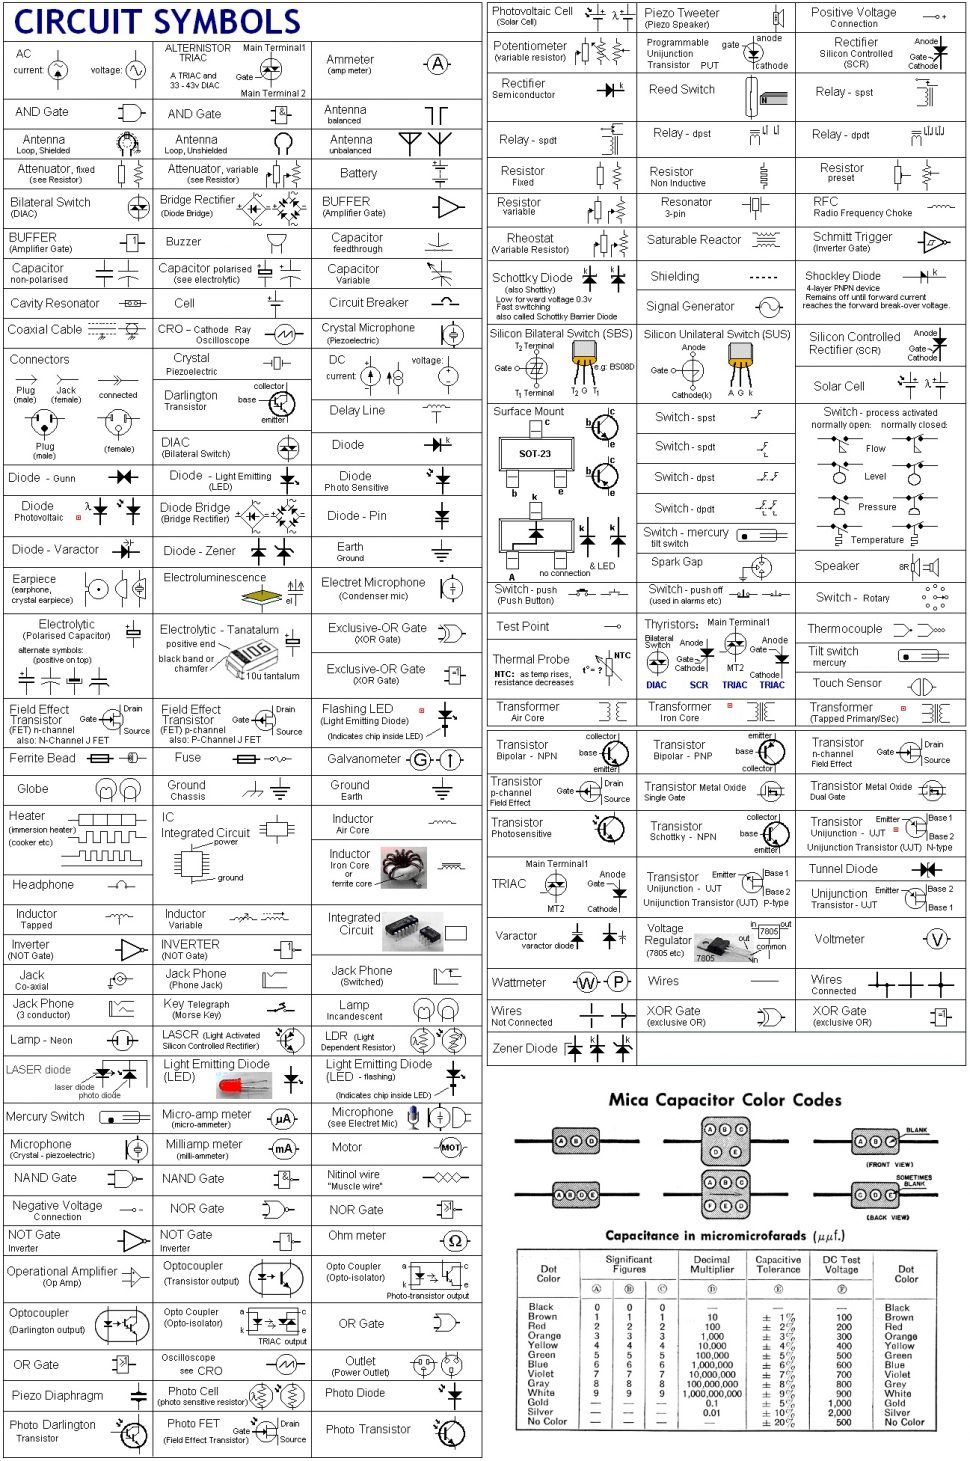 Componentwiring schematic symbols and meanings electrical download componentwiring schematic symbols and meanings electrical download wire autocad australian standards relay schematics for word chart pdf uk wire schematic asfbconference2016 Image collections